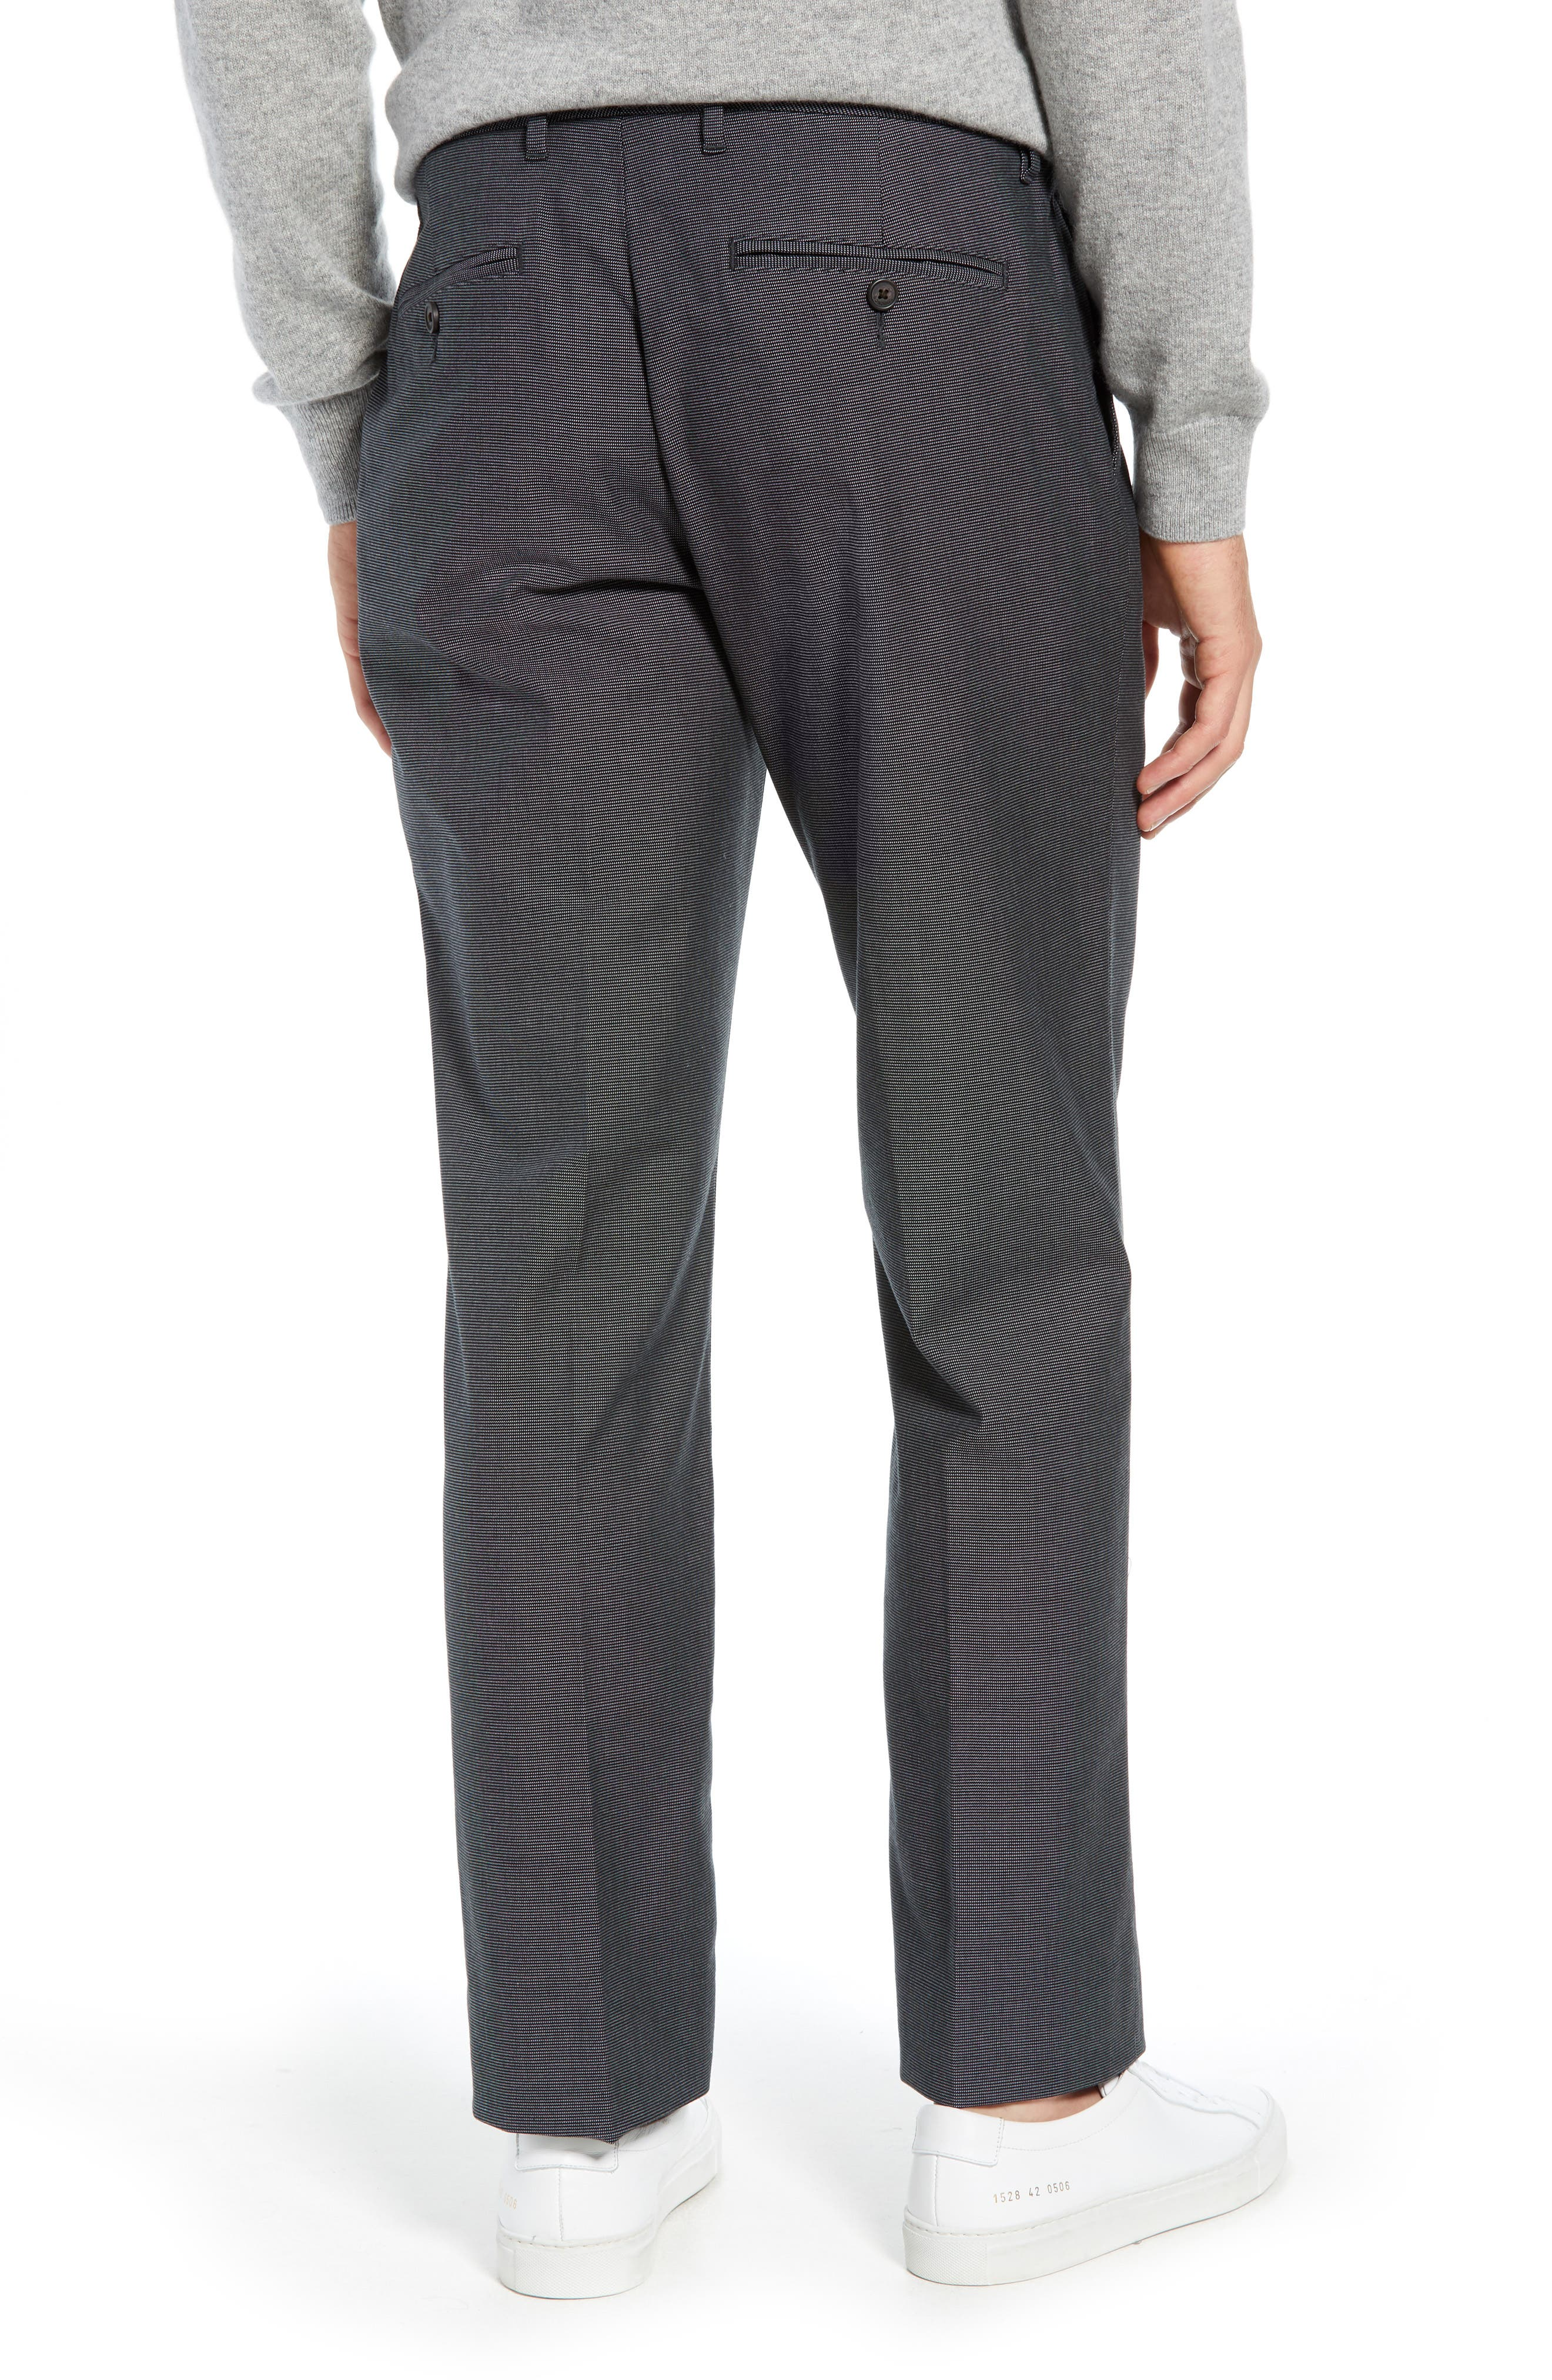 Weekday Warrior Straight Leg Stretch Dress Pants,                             Alternate thumbnail 2, color,                             TUESDAY CHARCOAL